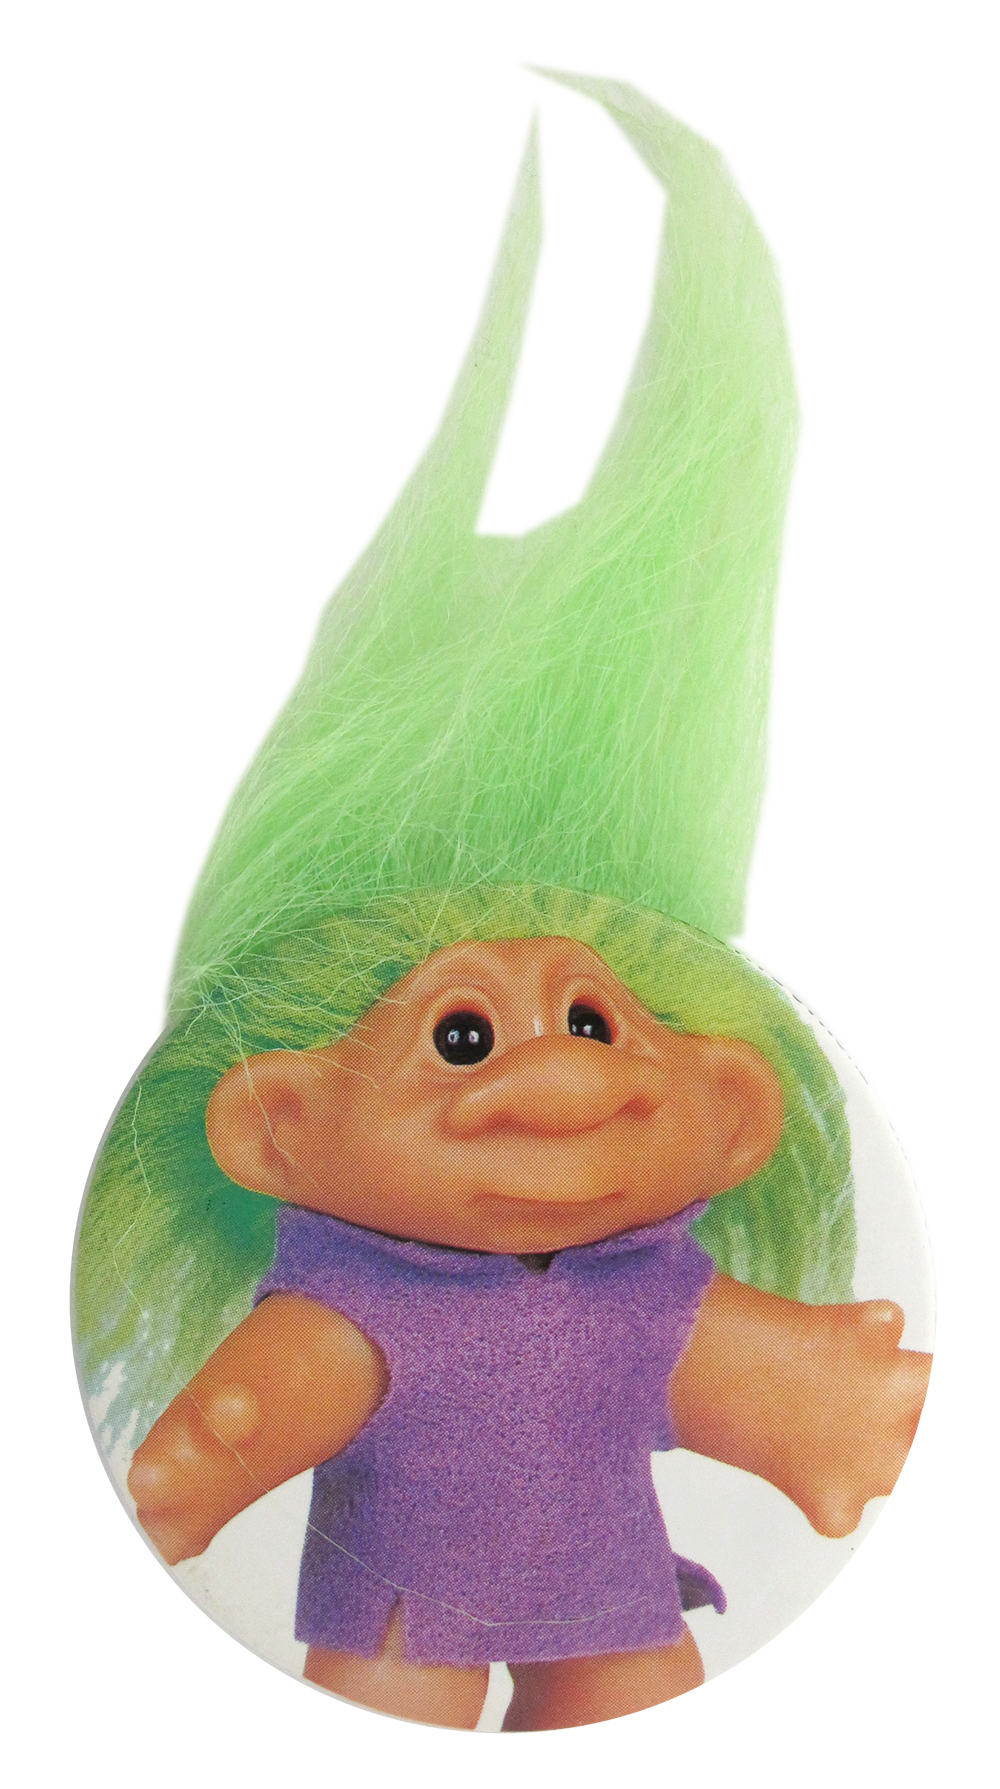 troll doll green busy beaver button museum